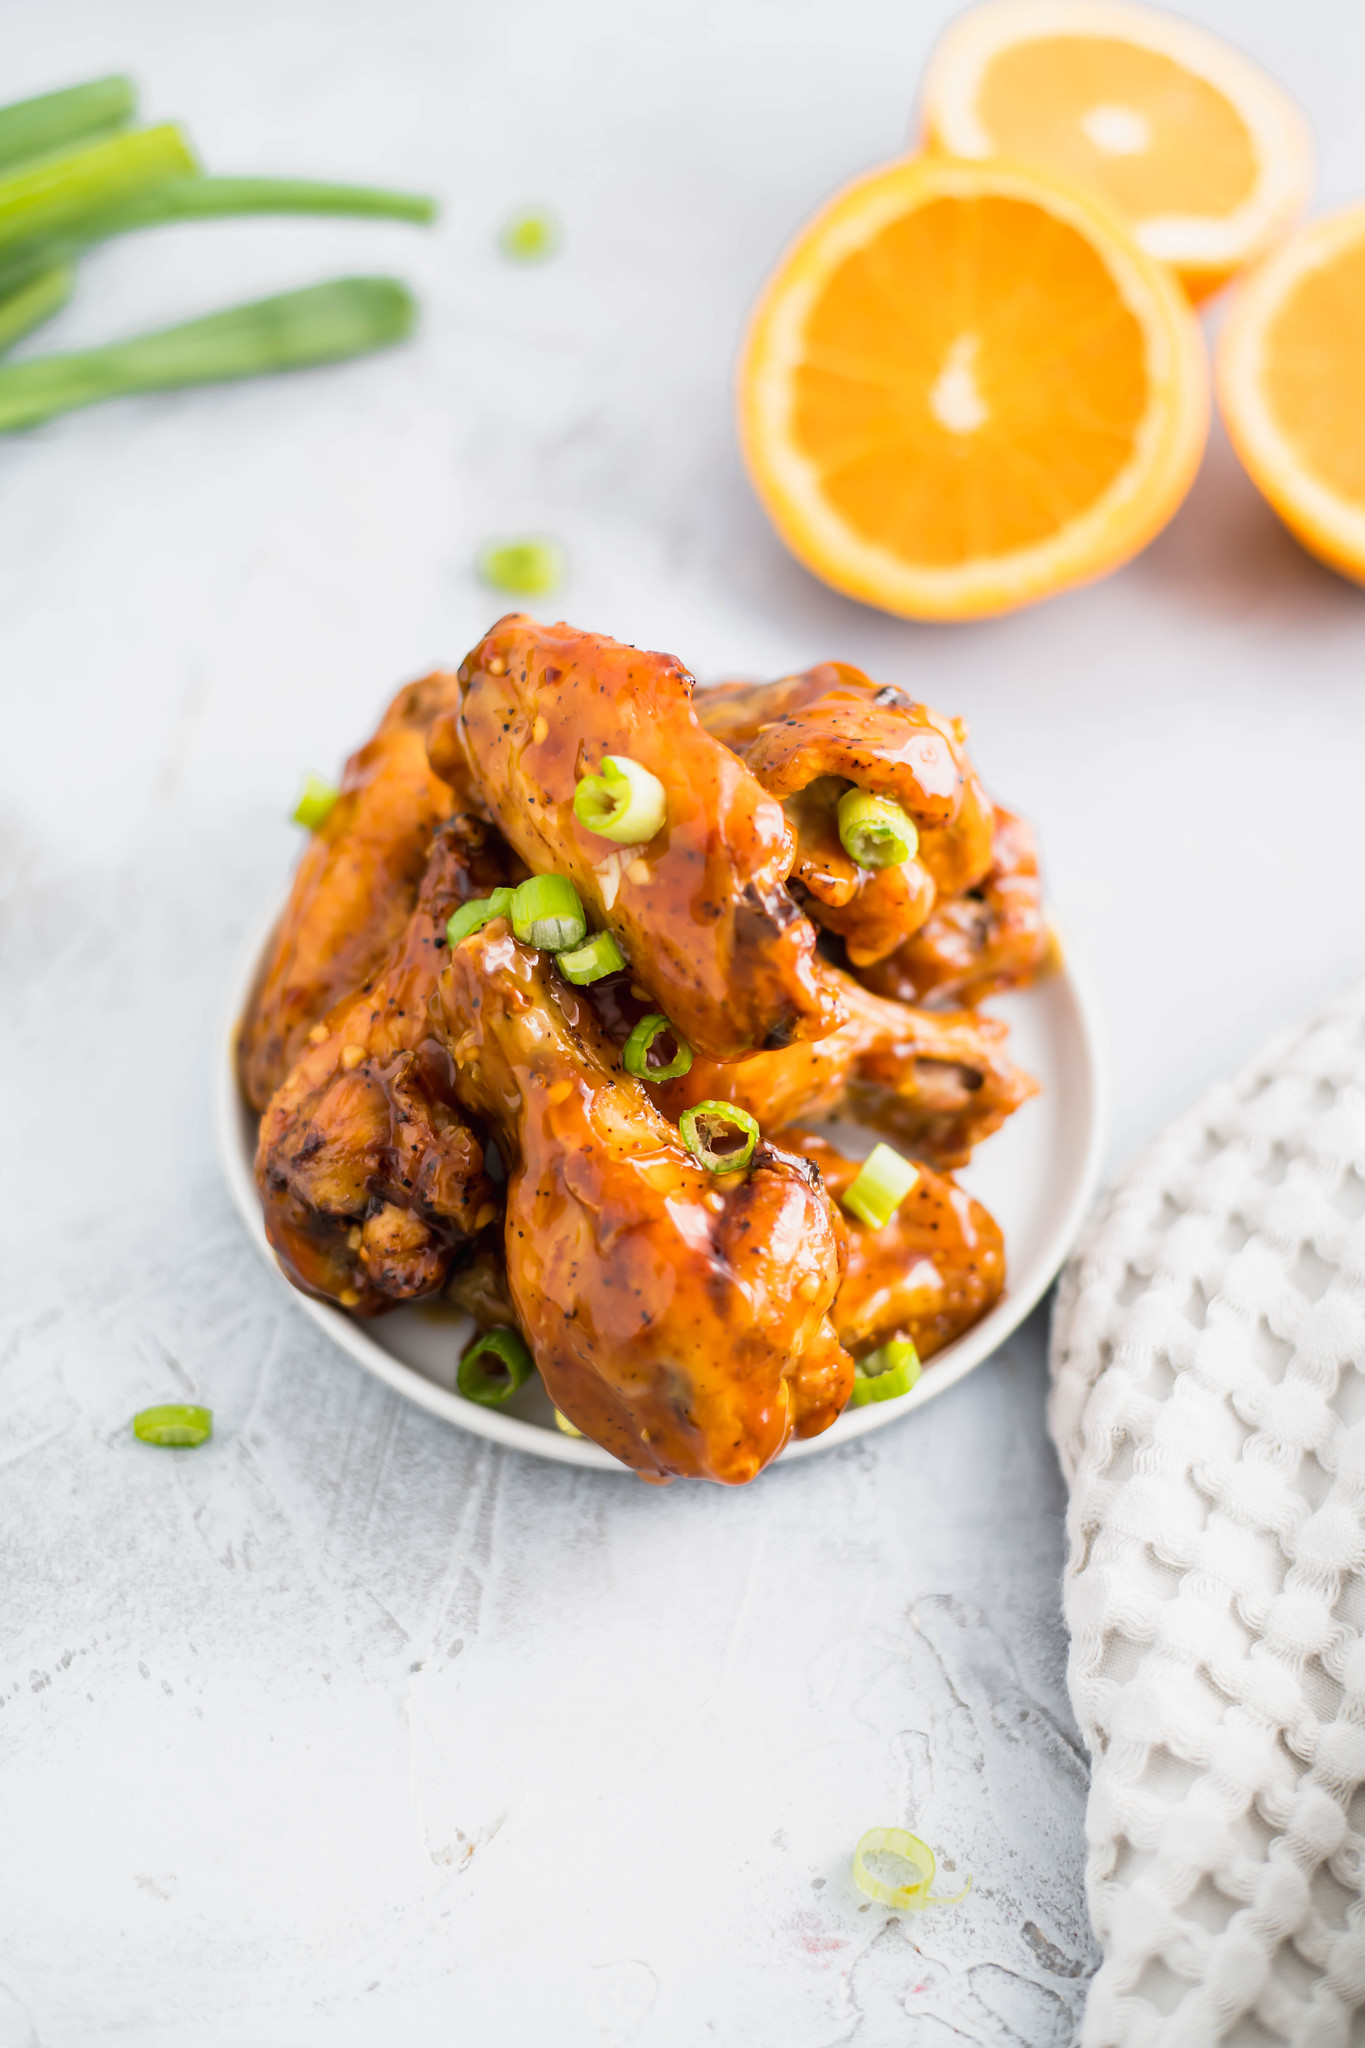 Need a fun and flavorful chicken wing recipe for the Super Bowl? These Orange Chicken Wings are packed with bright, spicy flavor.